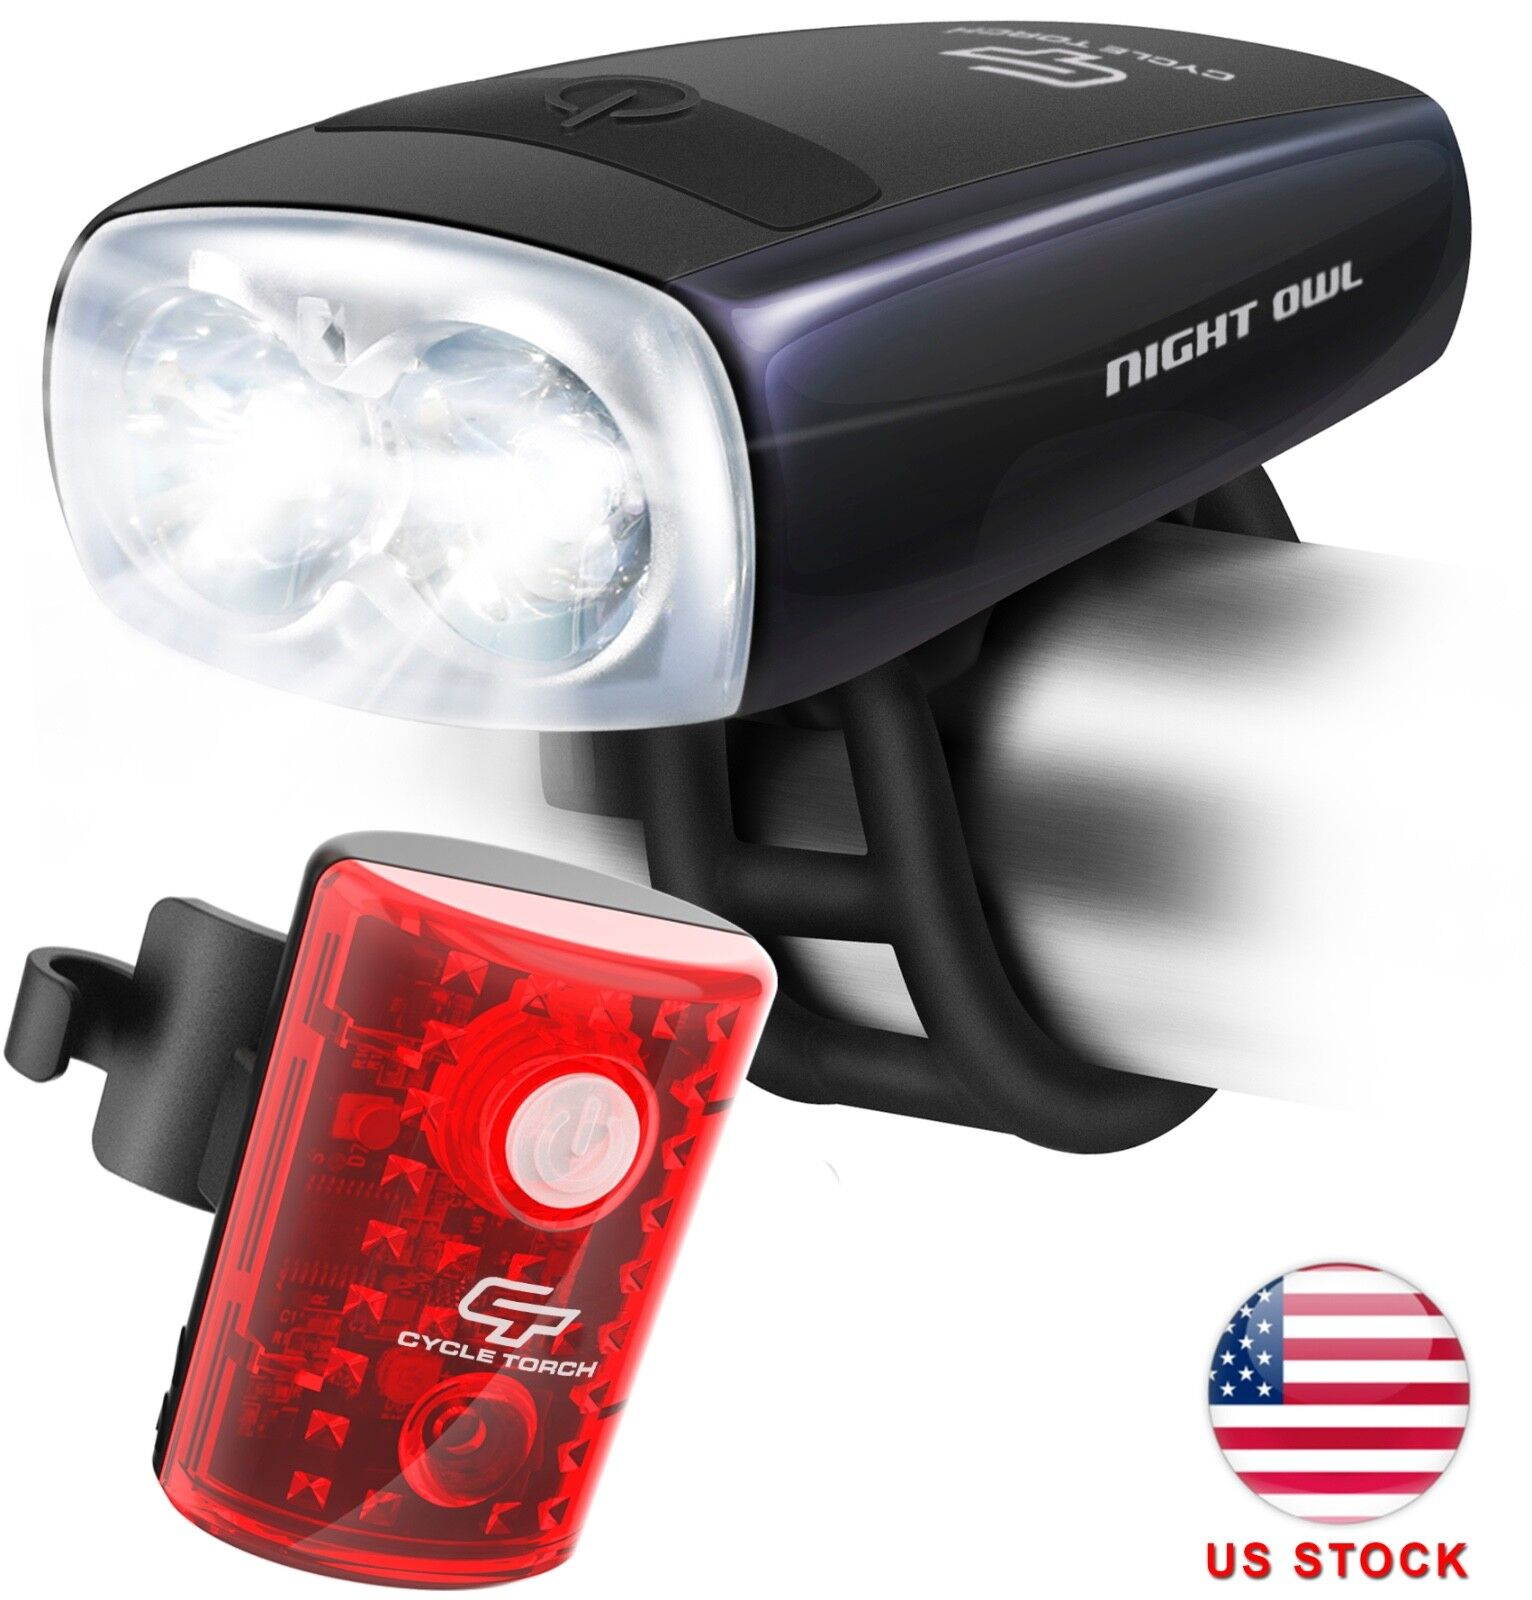 Cycle Torch Night Owl USB Rechargeable Bike Light Set, Perfe